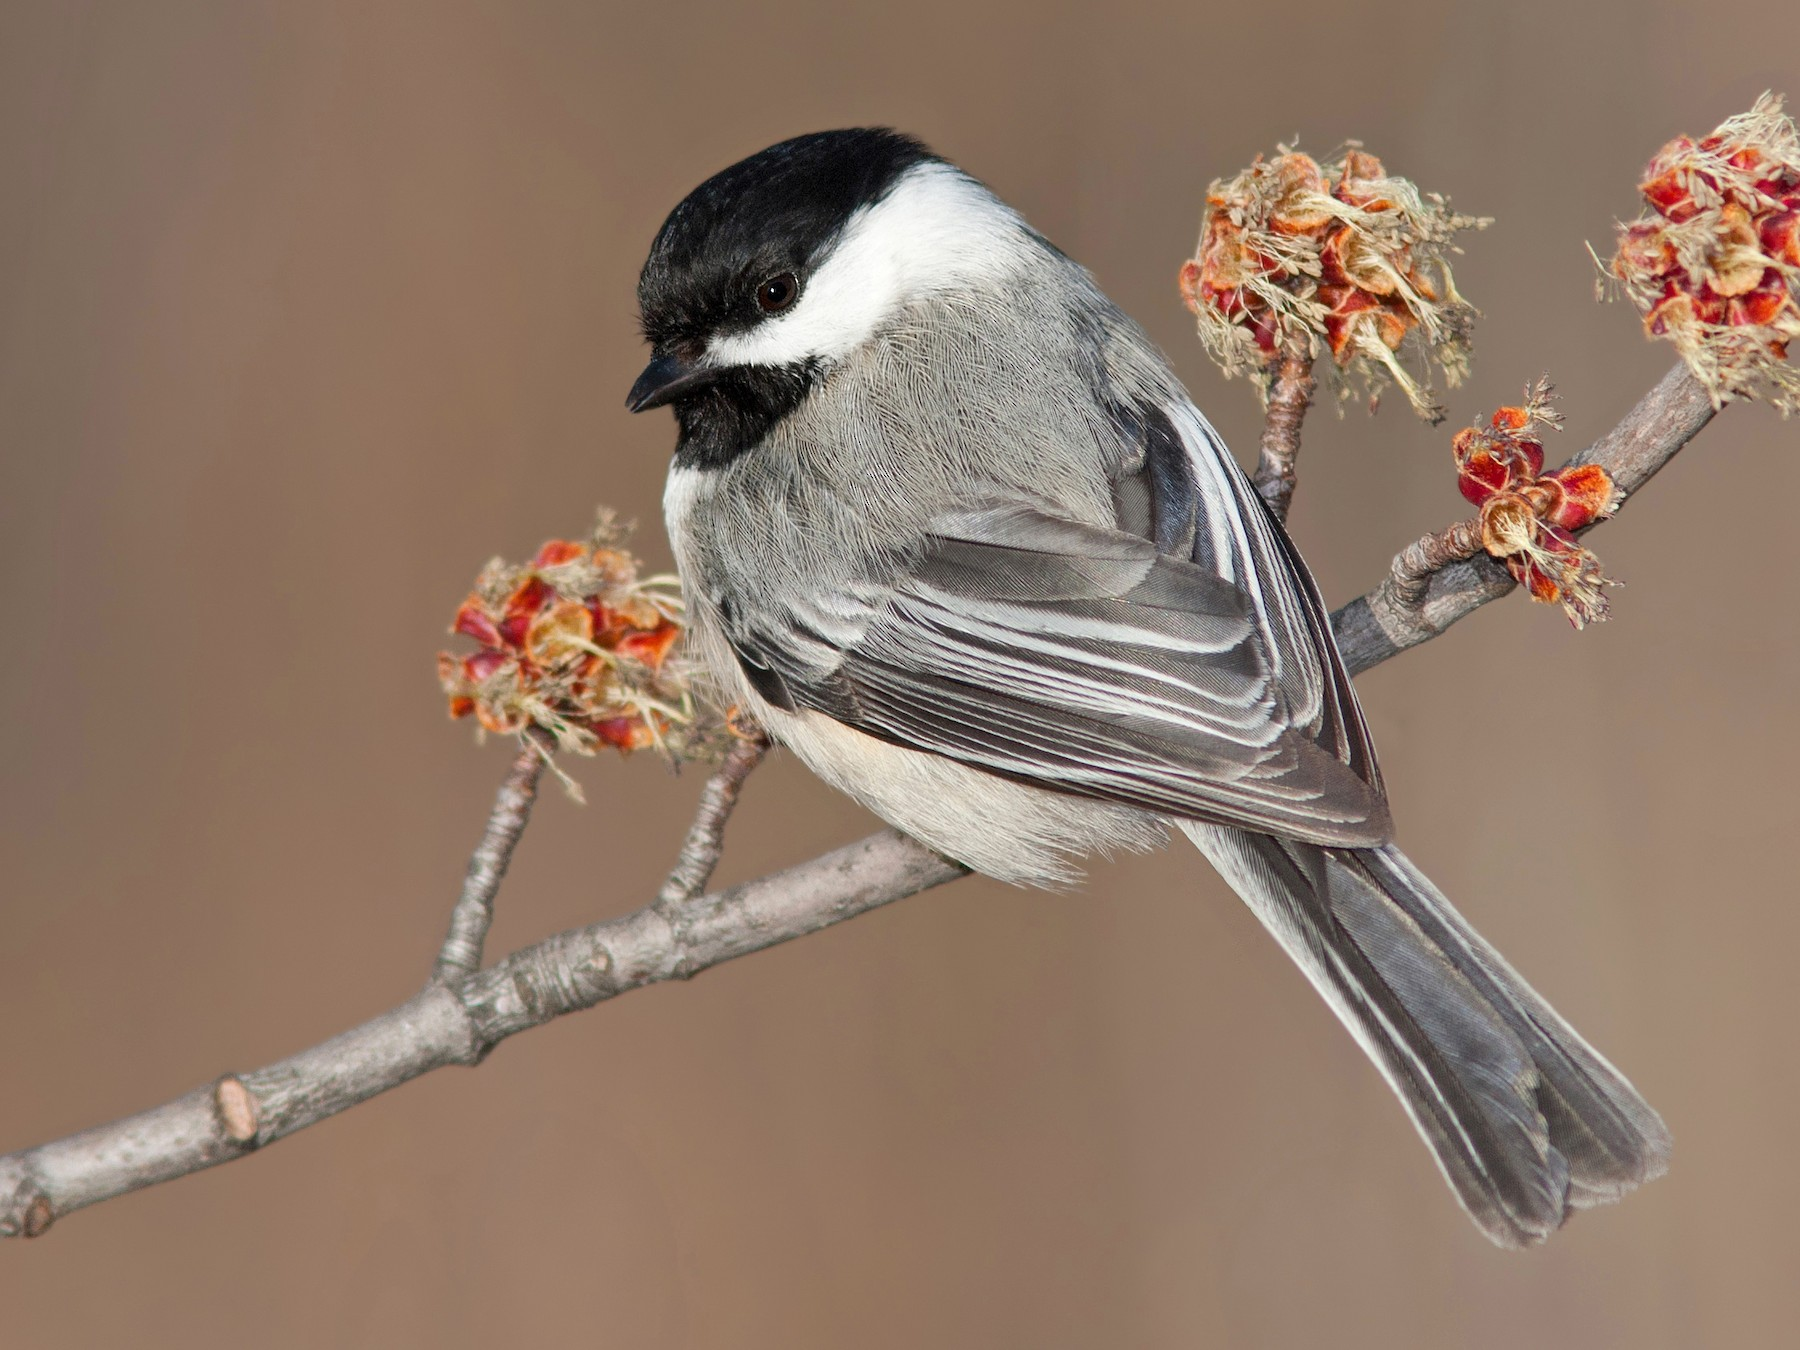 Black-capped Chickadee - Darlene Friedman